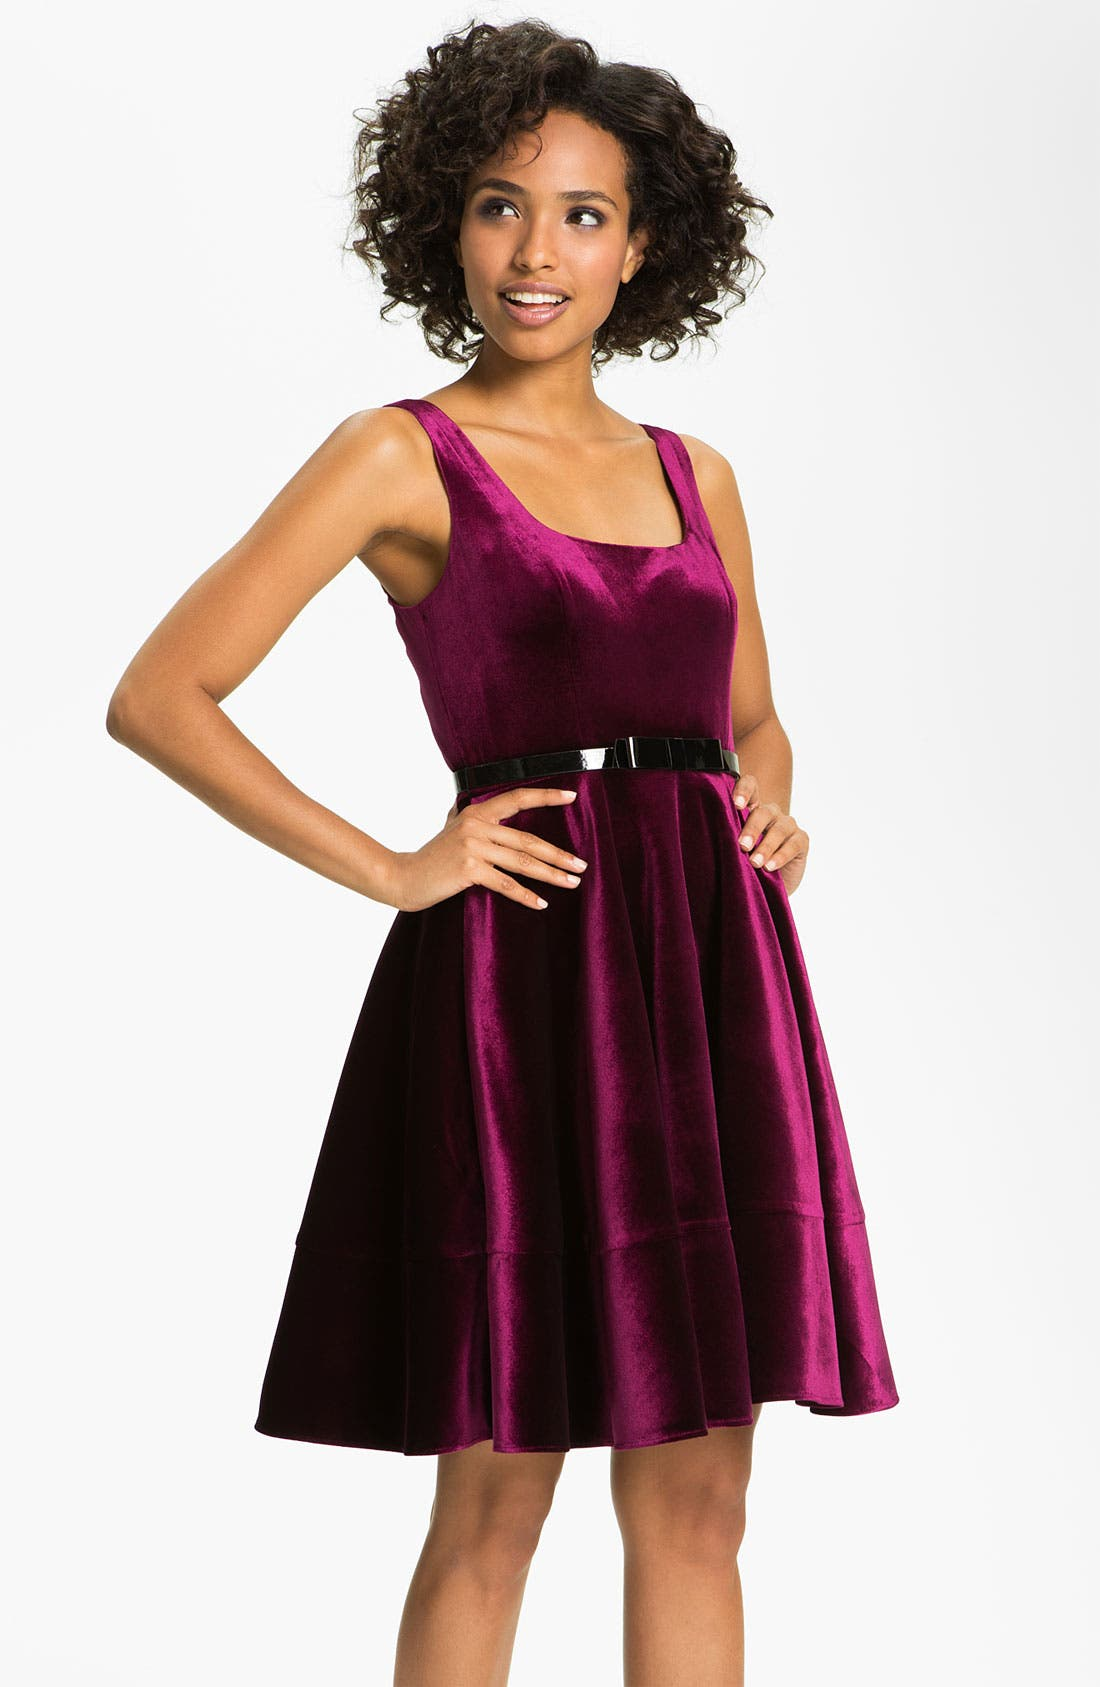 Alternate Image 1 Selected - Adrianna Papell Scoop Neck Velvet Fit & Flare Dress